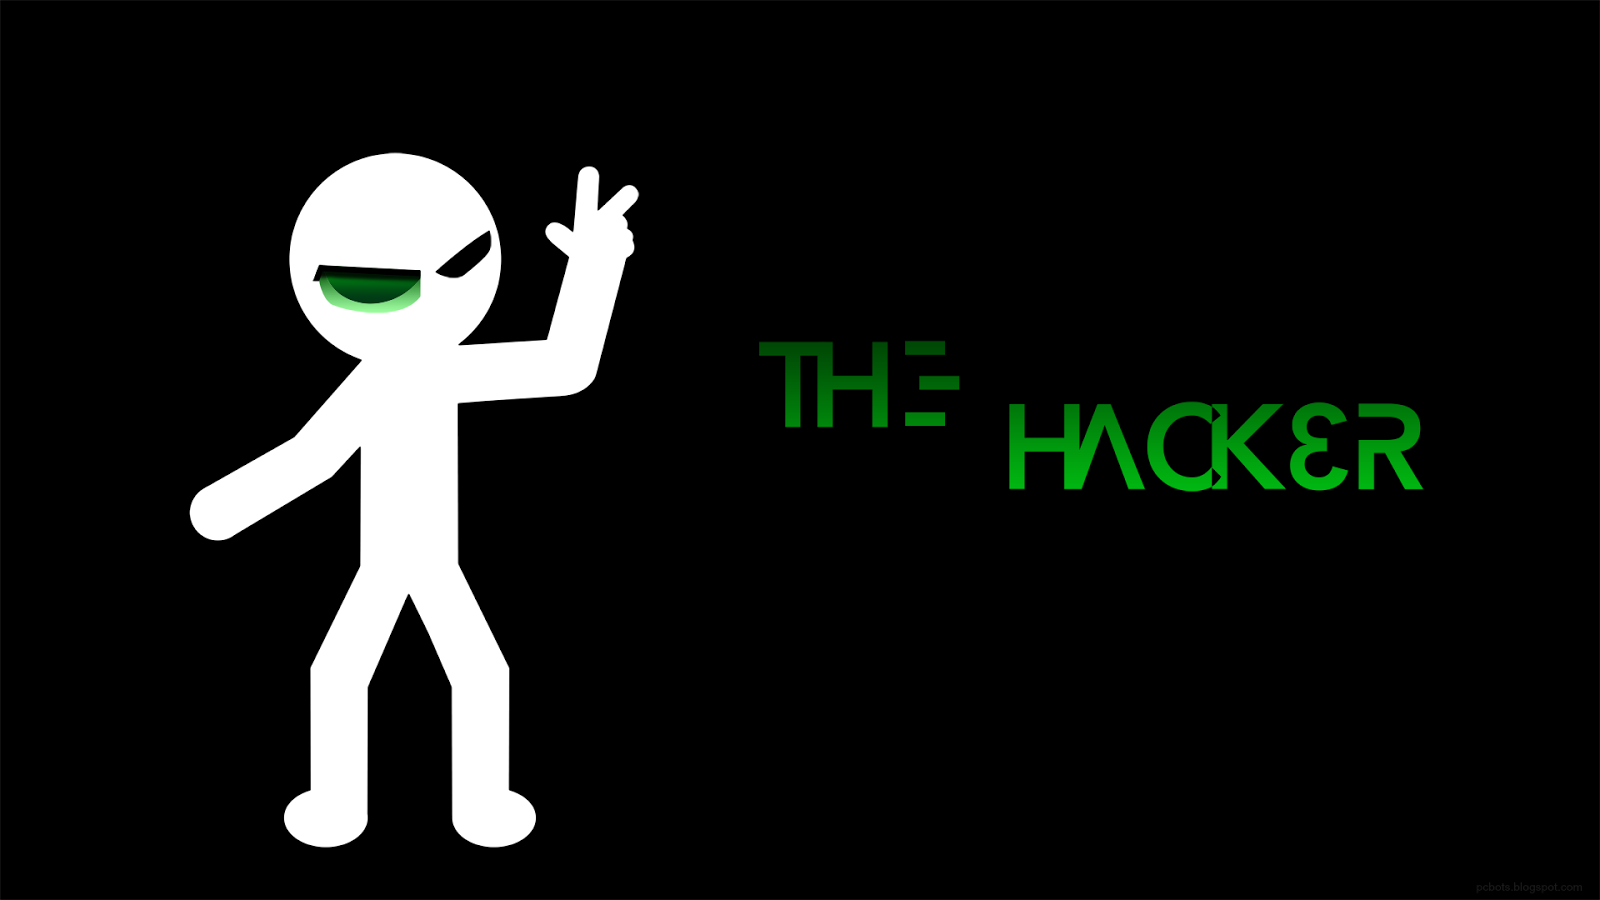 Hackers Wallpaper HD By Pcbots - Part-VII ~ PCbots Labs (Blog)